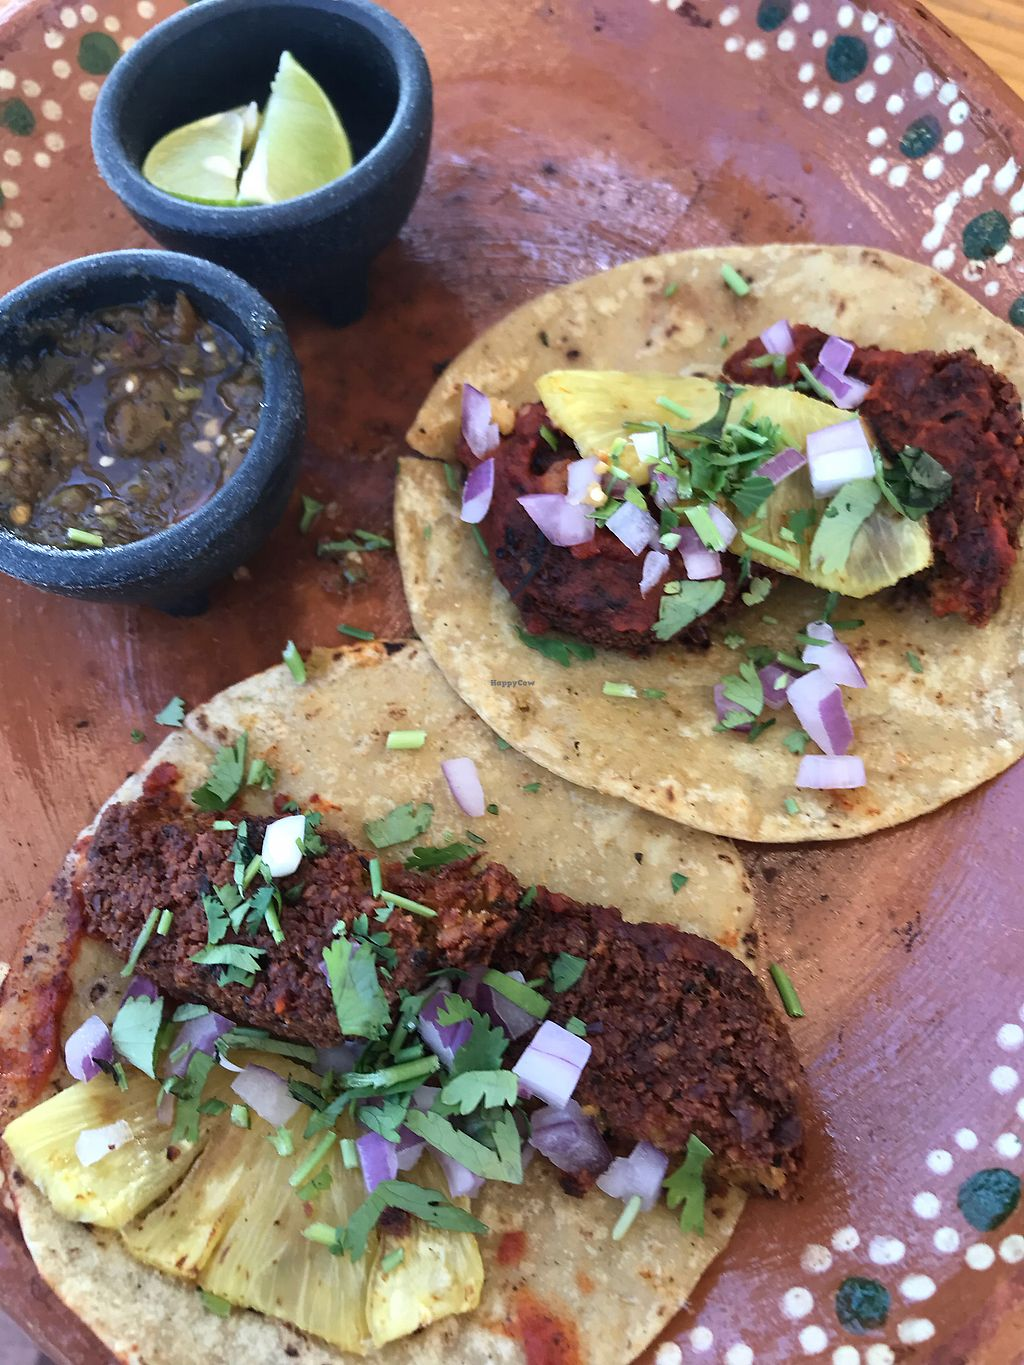 "Photo of Capuchino Cafe  by <a href=""/members/profile/JackSidnell"">JackSidnell</a> <br/>Tacos al pastor !!! Also amazing  <br/> February 12, 2018  - <a href='/contact/abuse/image/100111/358471'>Report</a>"